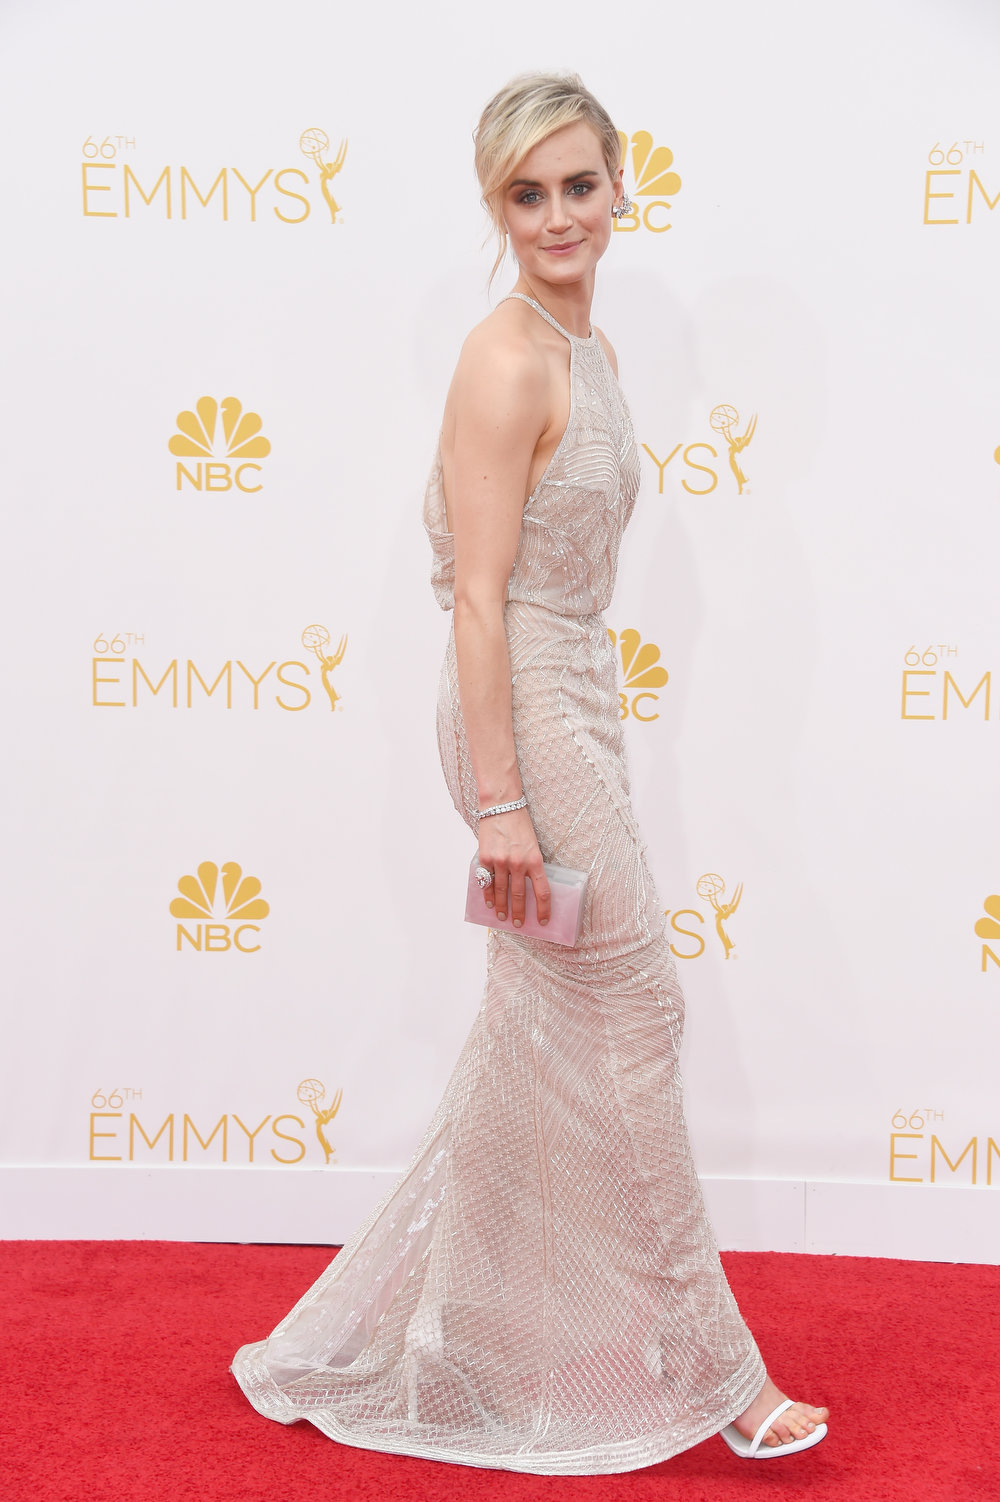 . Actress Taylor Schilling attends the 66th Annual Primetime Emmy Awards held at Nokia Theatre L.A. Live on August 25, 2014 in Los Angeles, California.  (Photo by Frazer Harrison/Getty Images)